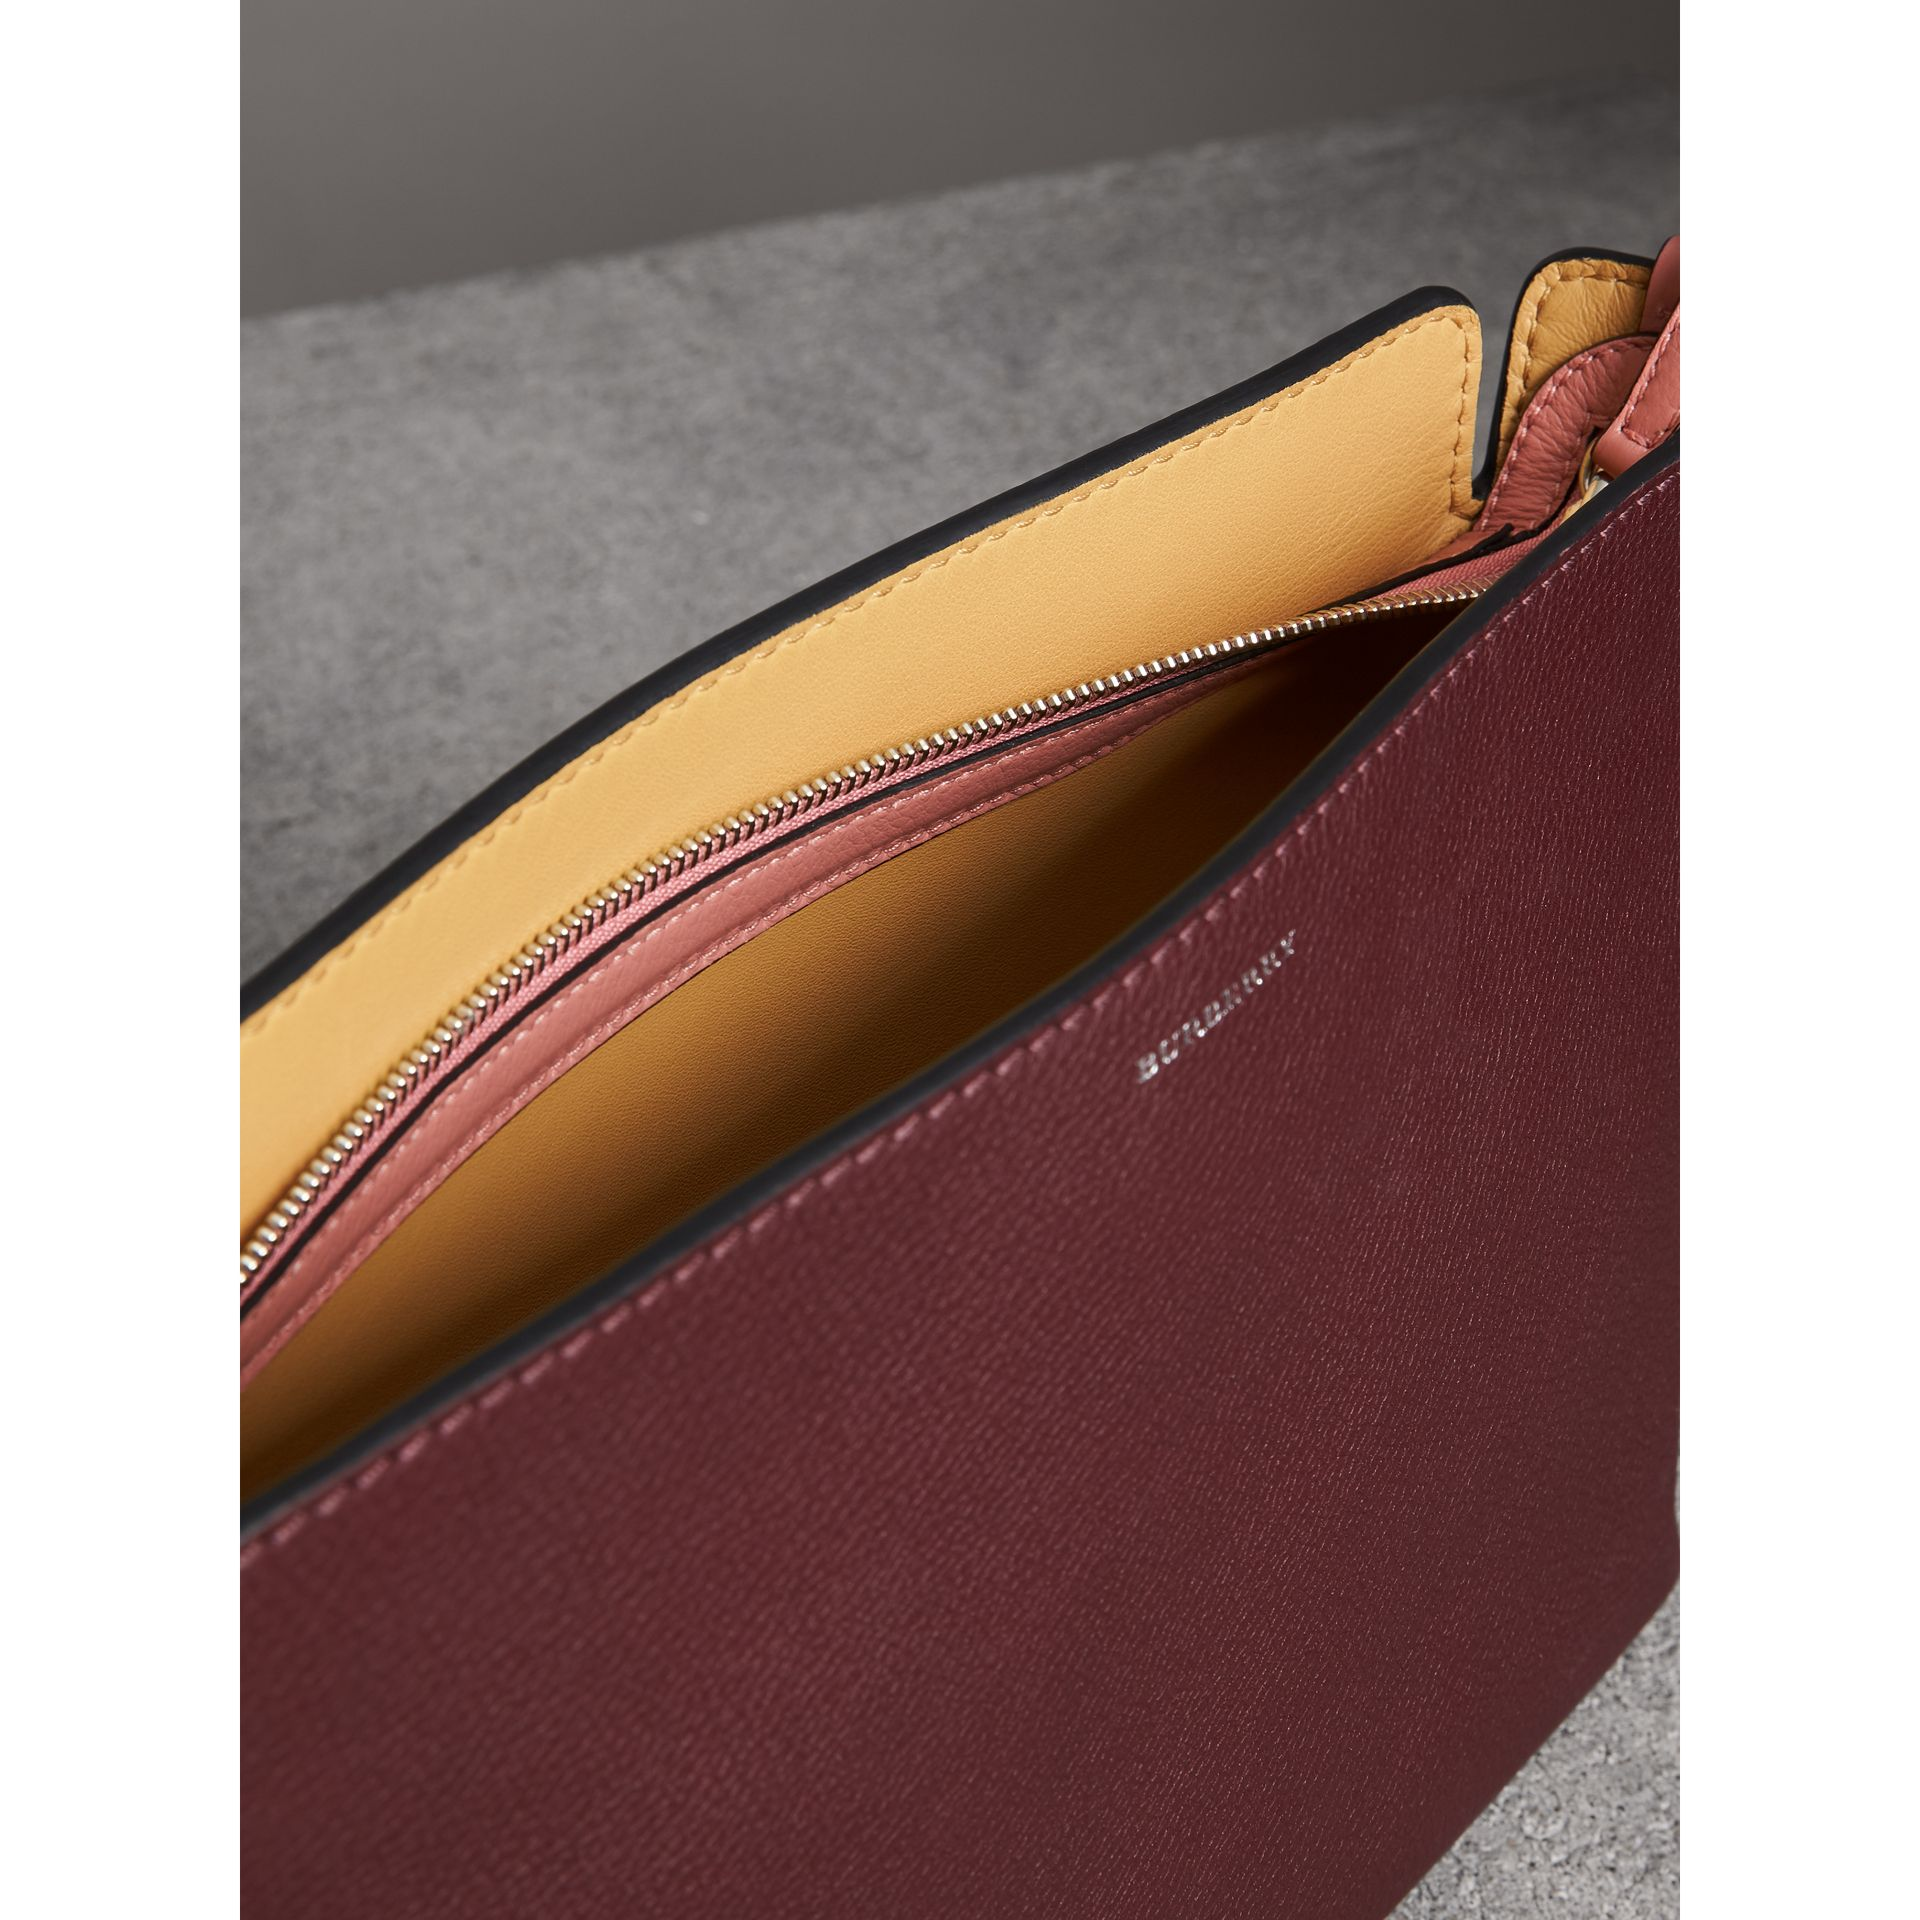 Medium Tri-tone Leather Clutch in Deep Claret/dusty Rose | Burberry - gallery image 5